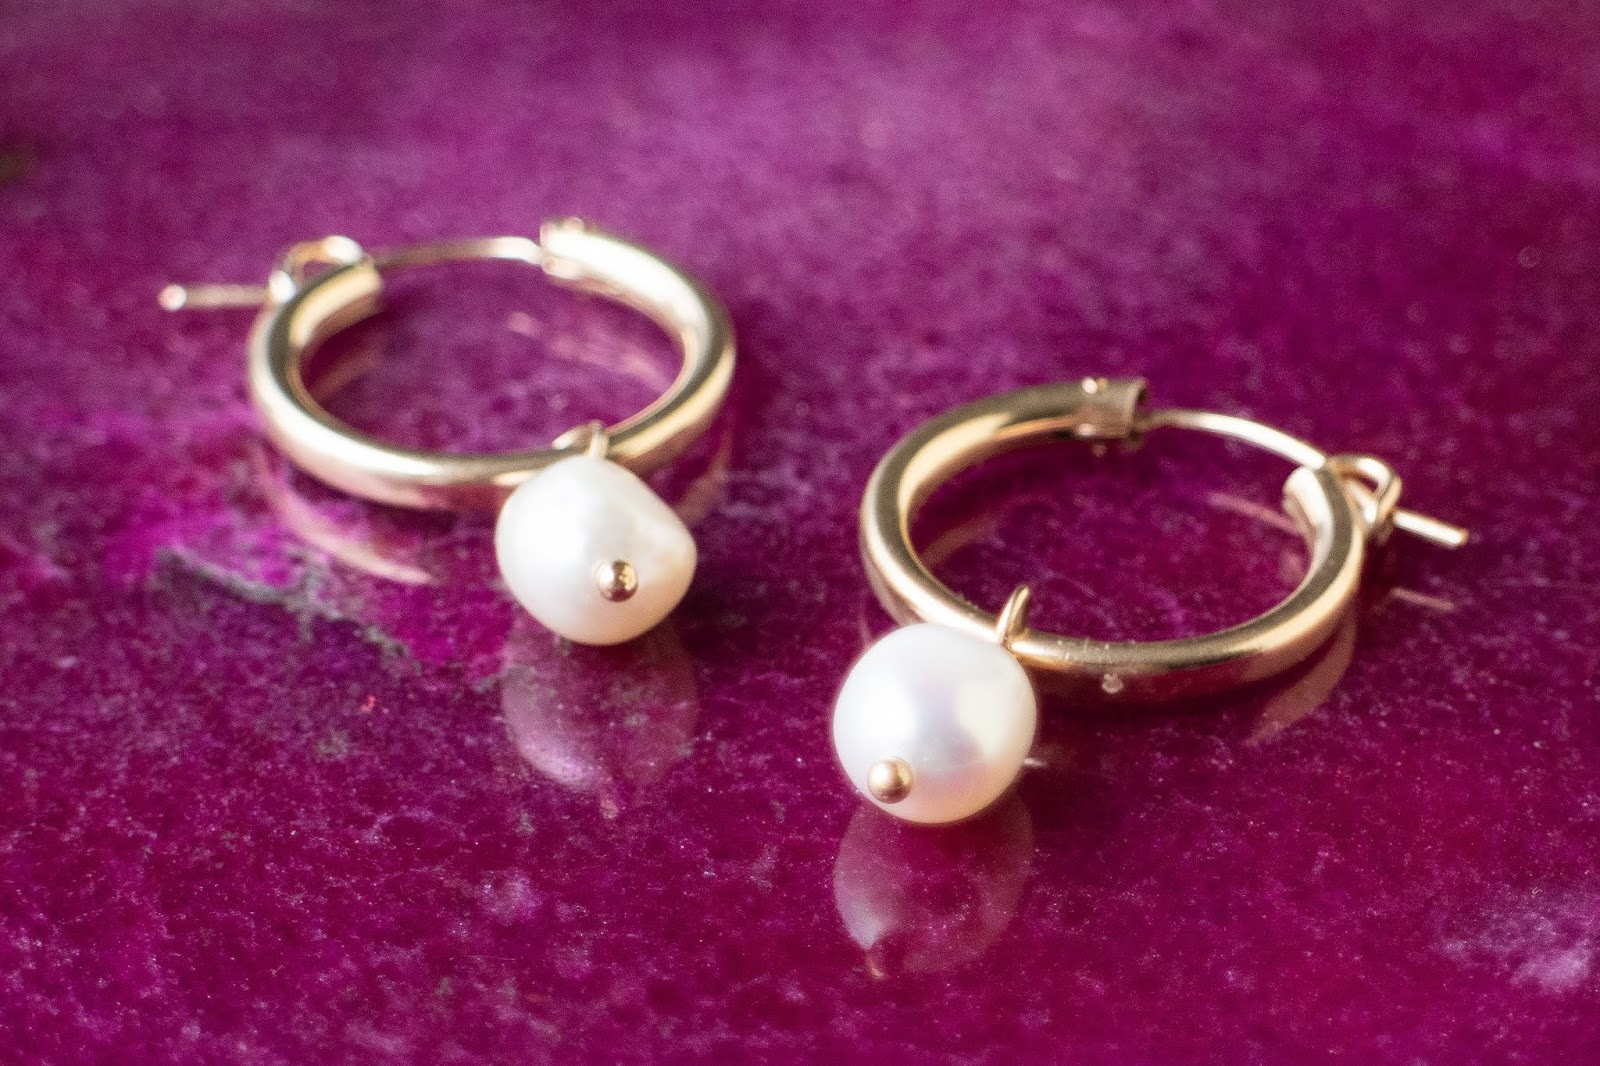 freshwater pearl and gold hoop earrings from Etsy Canada